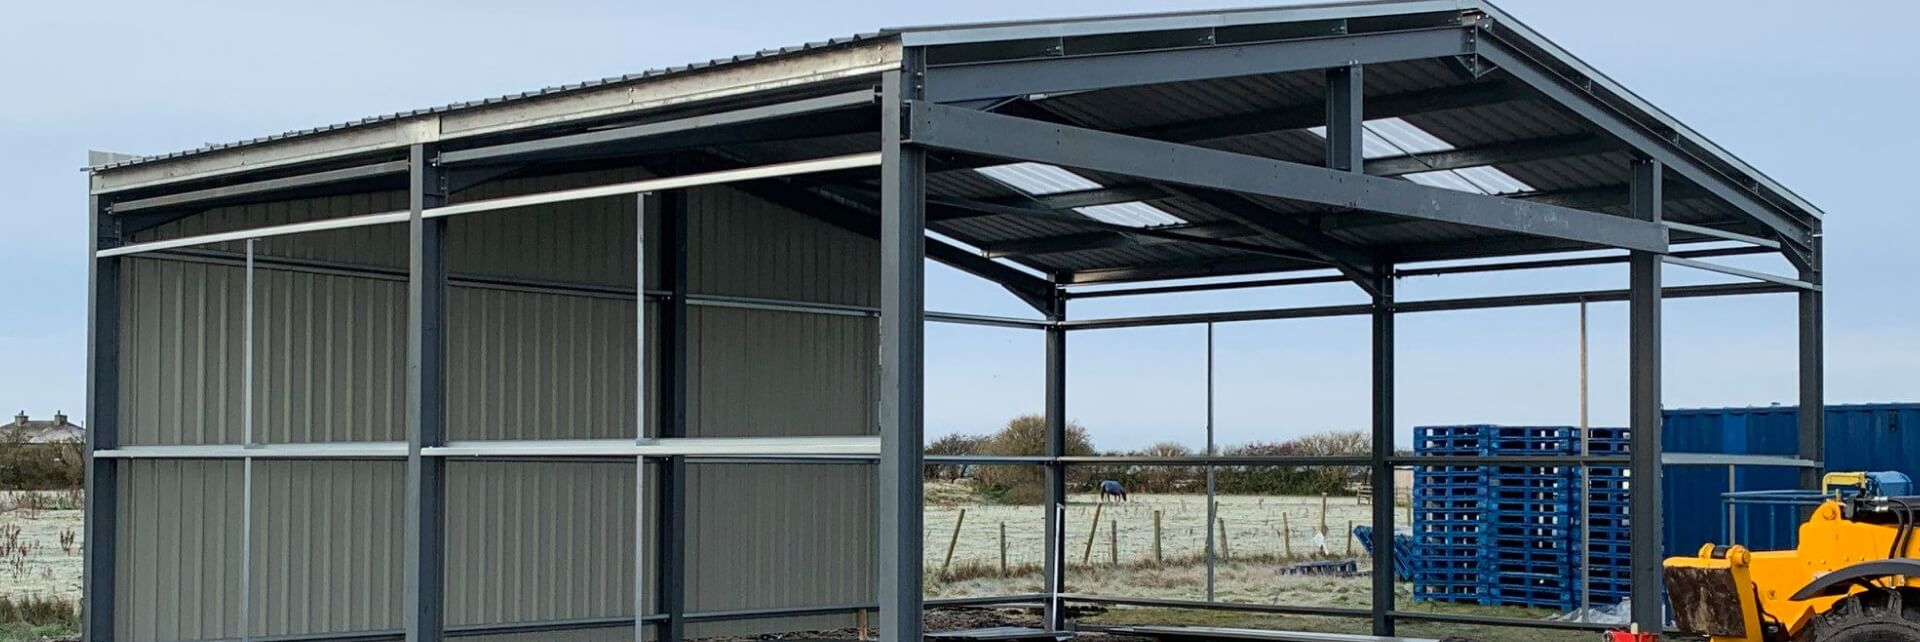 Constructed Steel Framed Building in Agricultural Environment